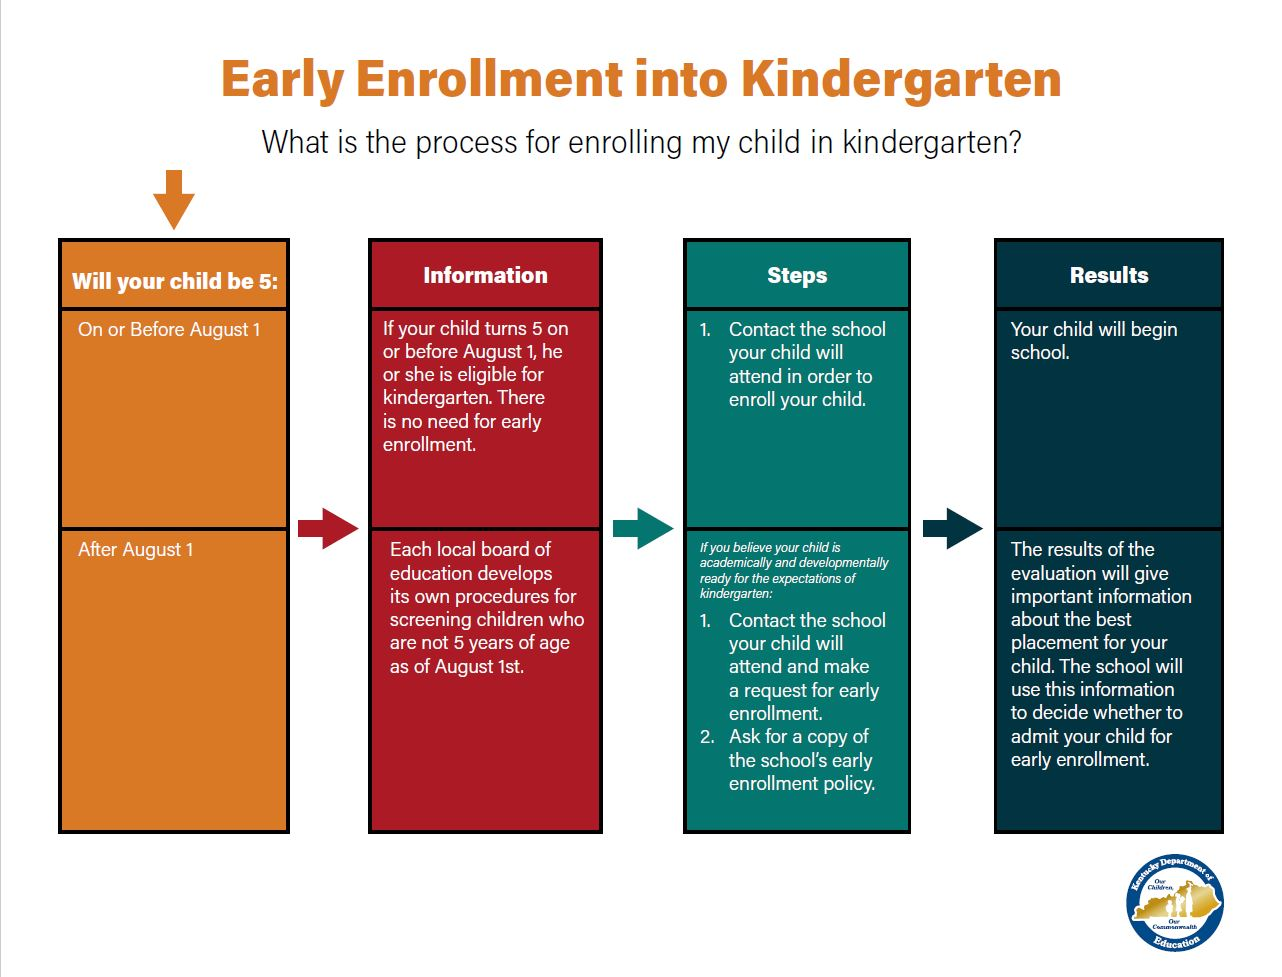 Descriptions of Early Enrollment for Kindergarten